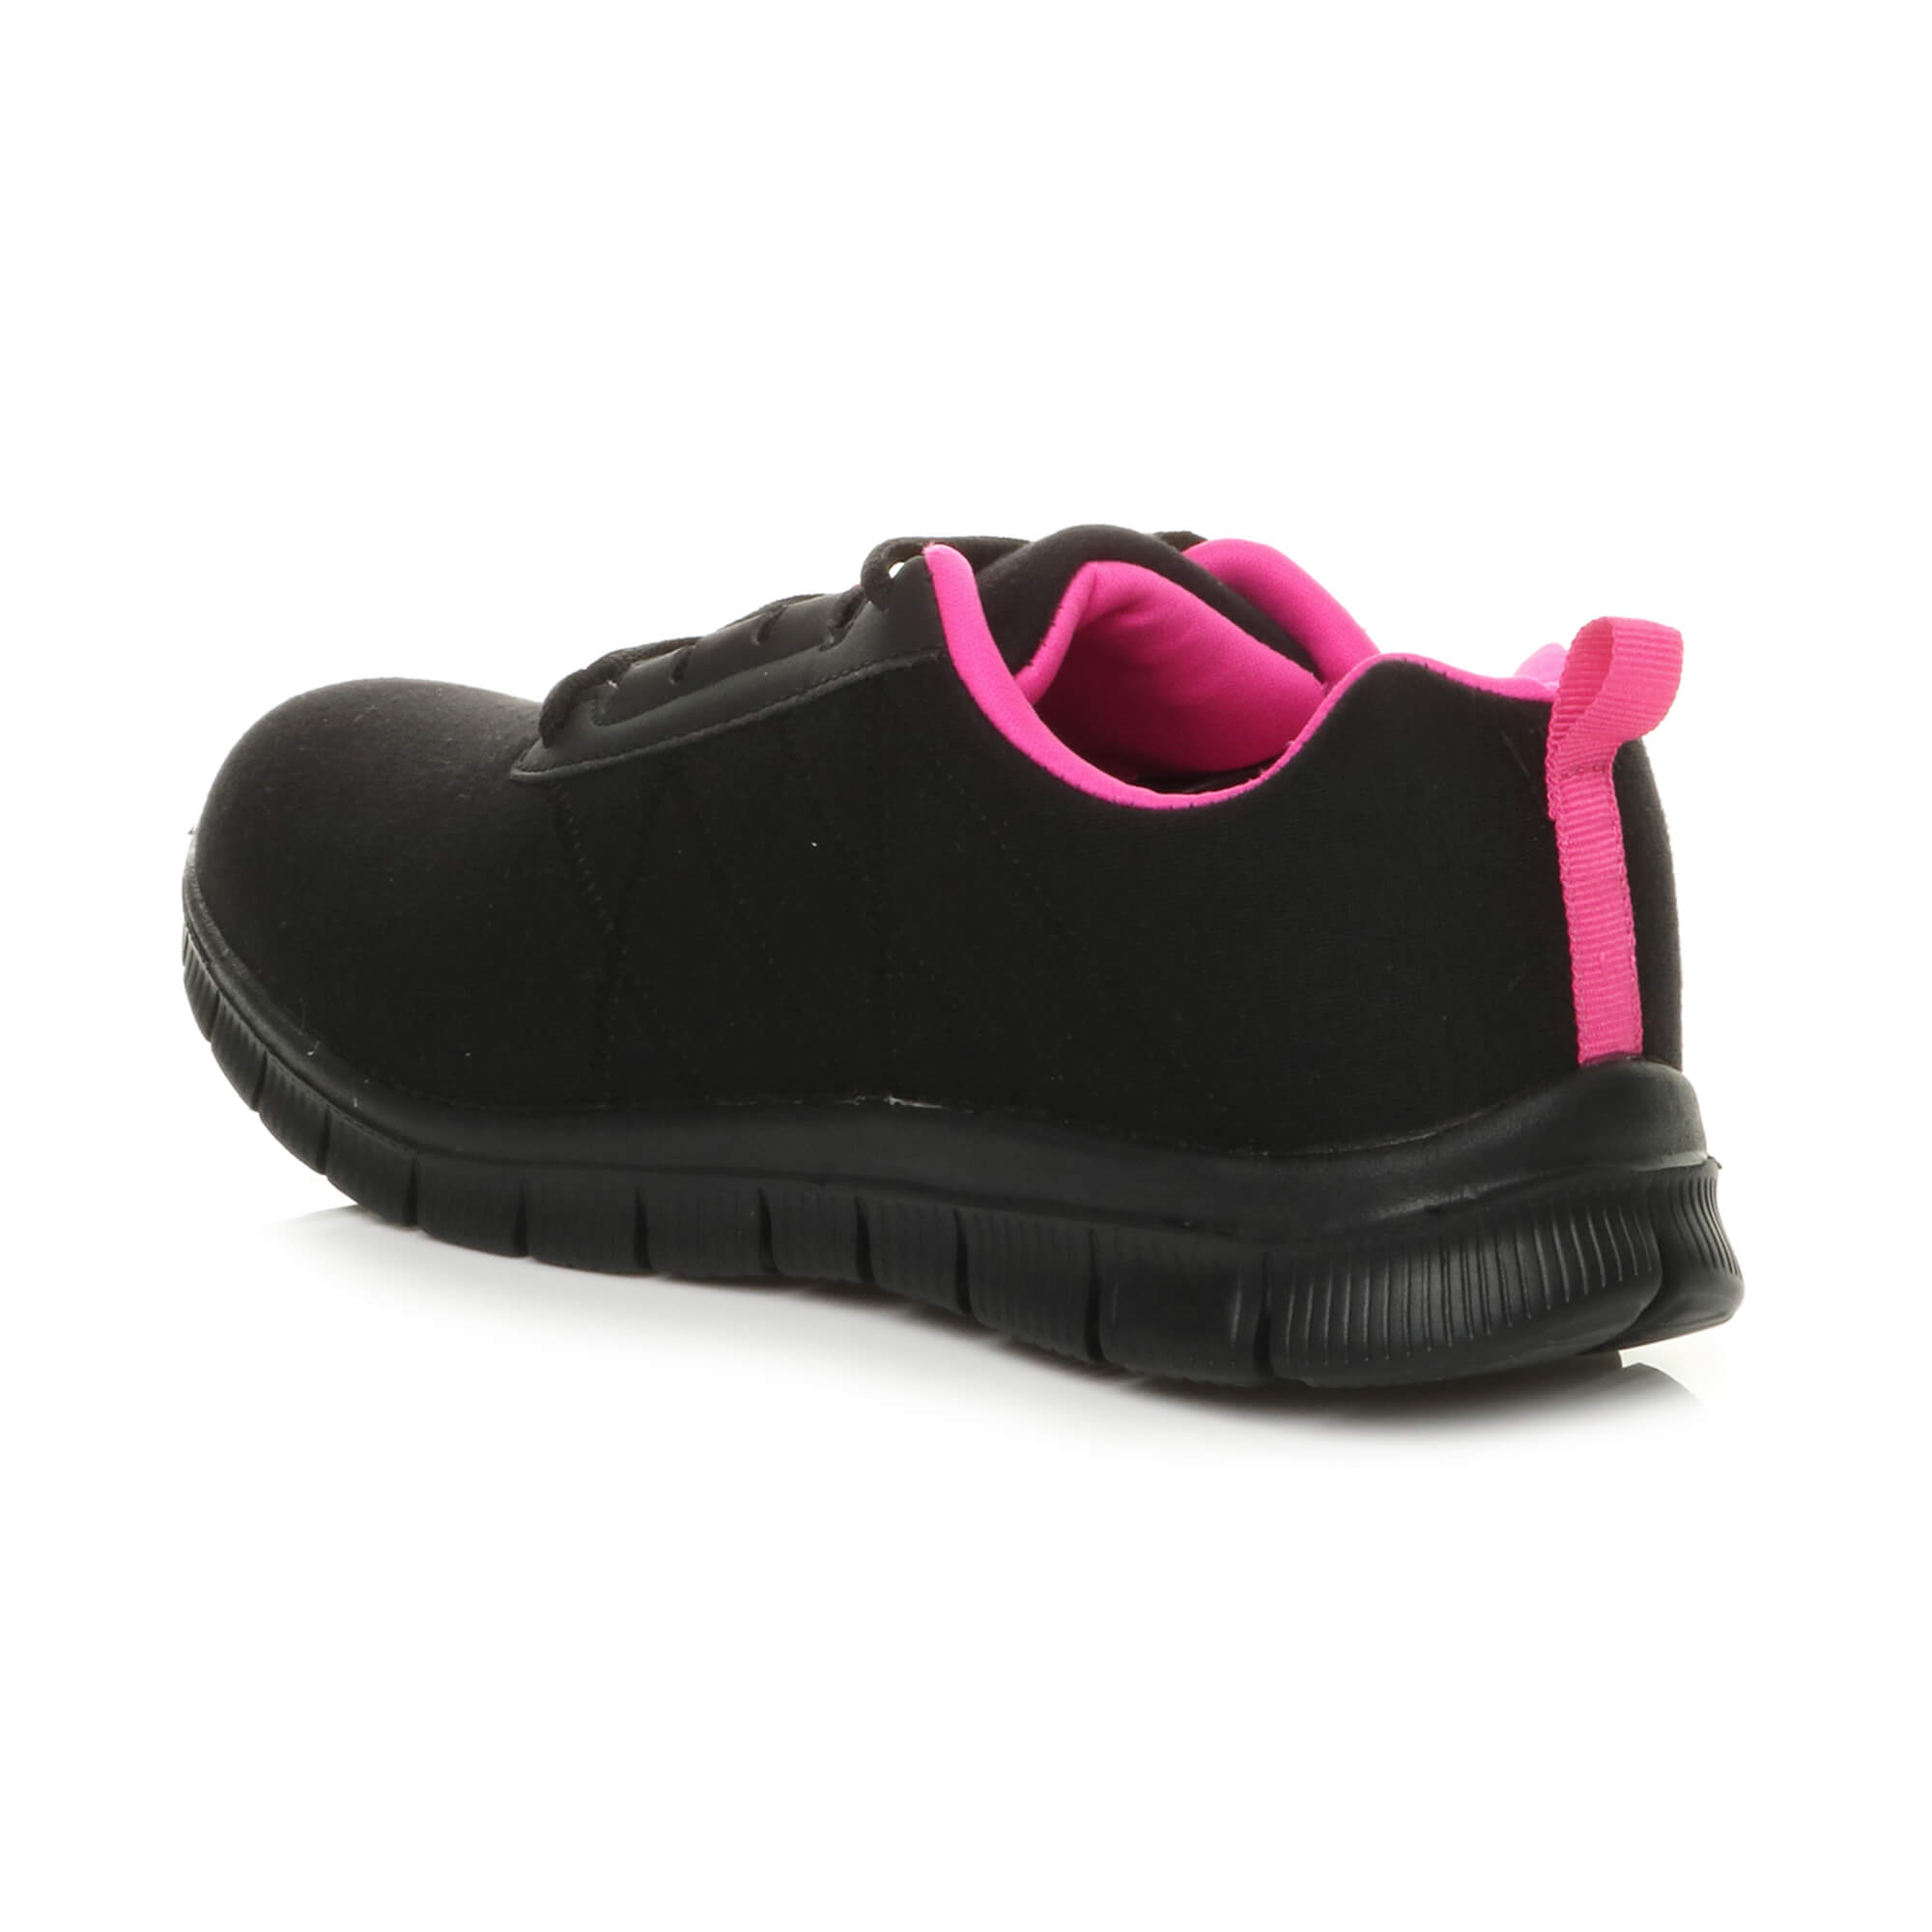 Womens ladies comfort memory foam lace up trainers activewear sneakers gym shoes